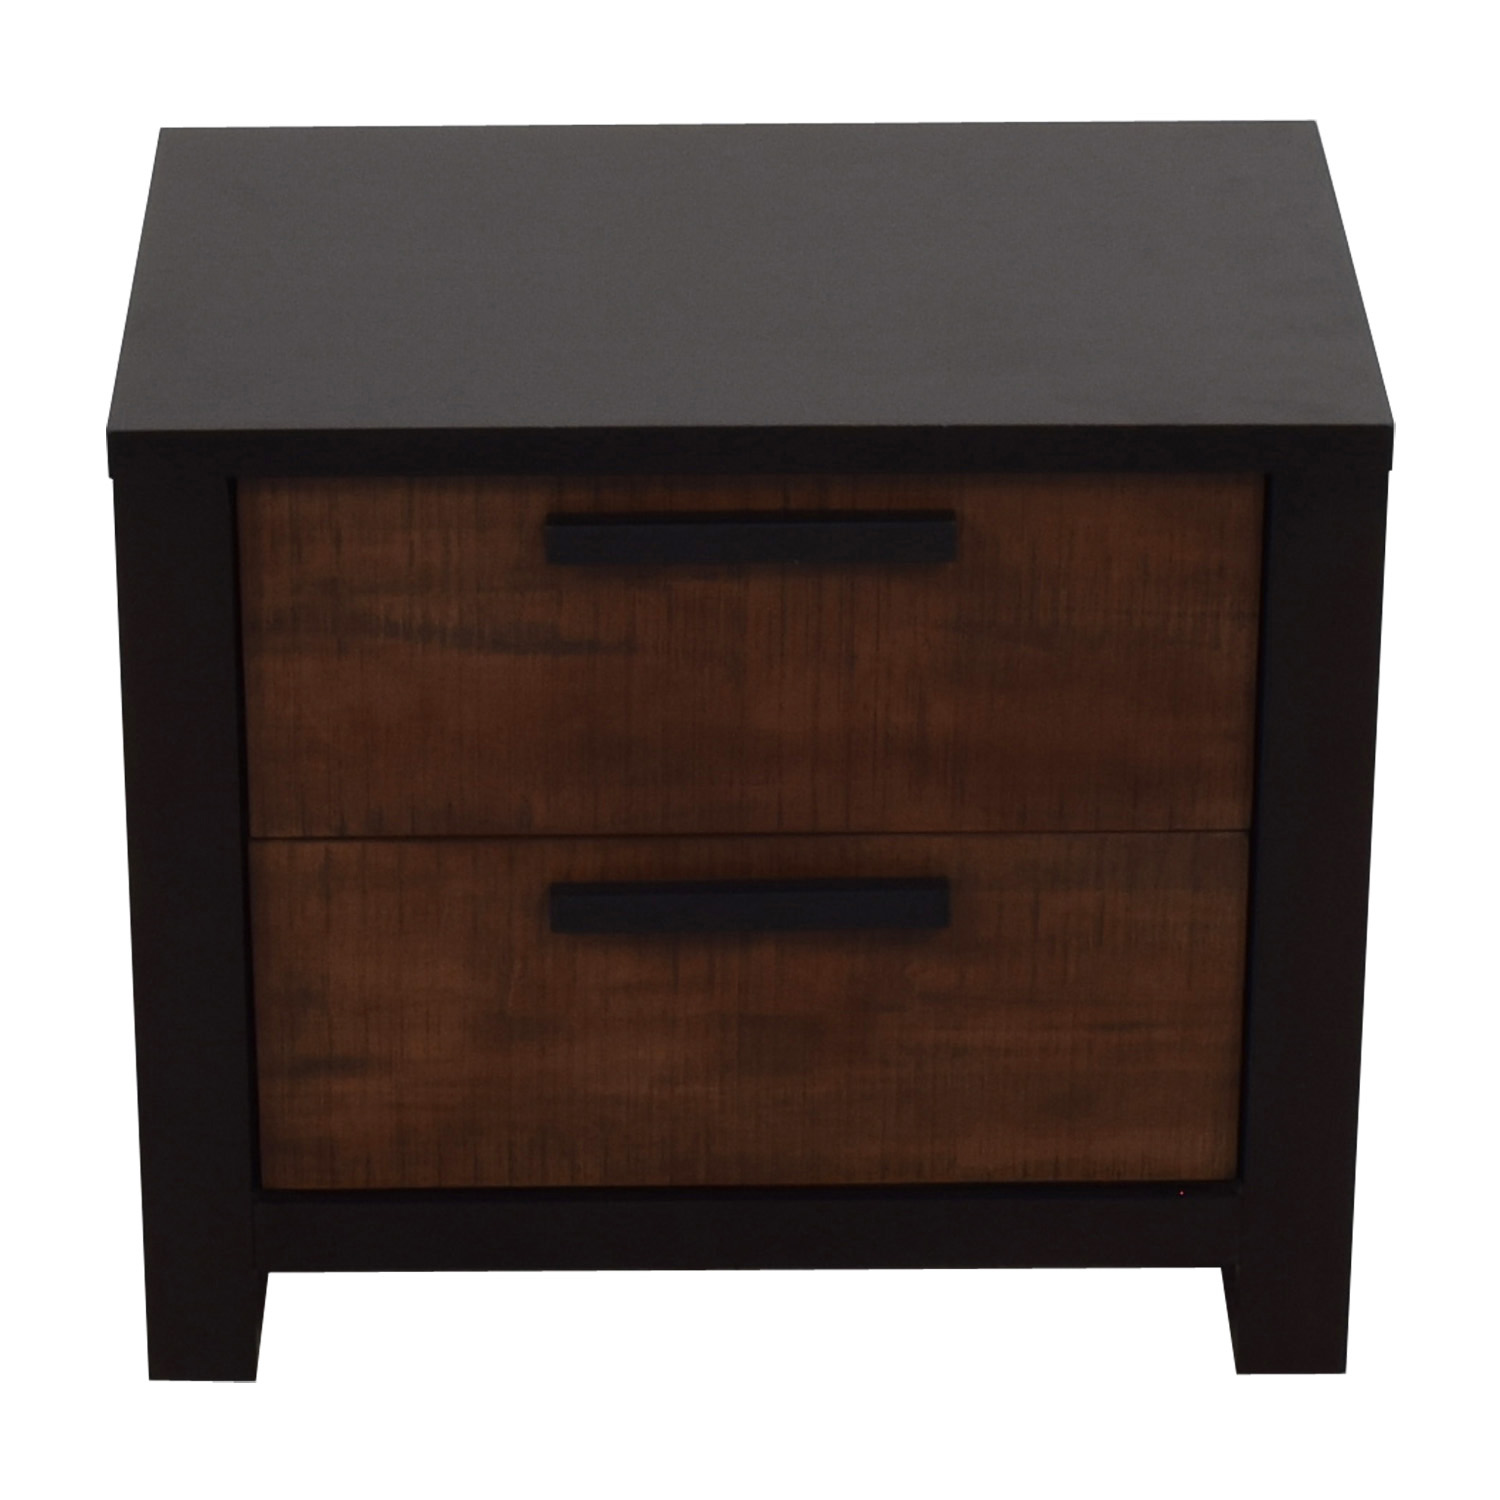 Casana Furniture Two-Drawer End Table sale